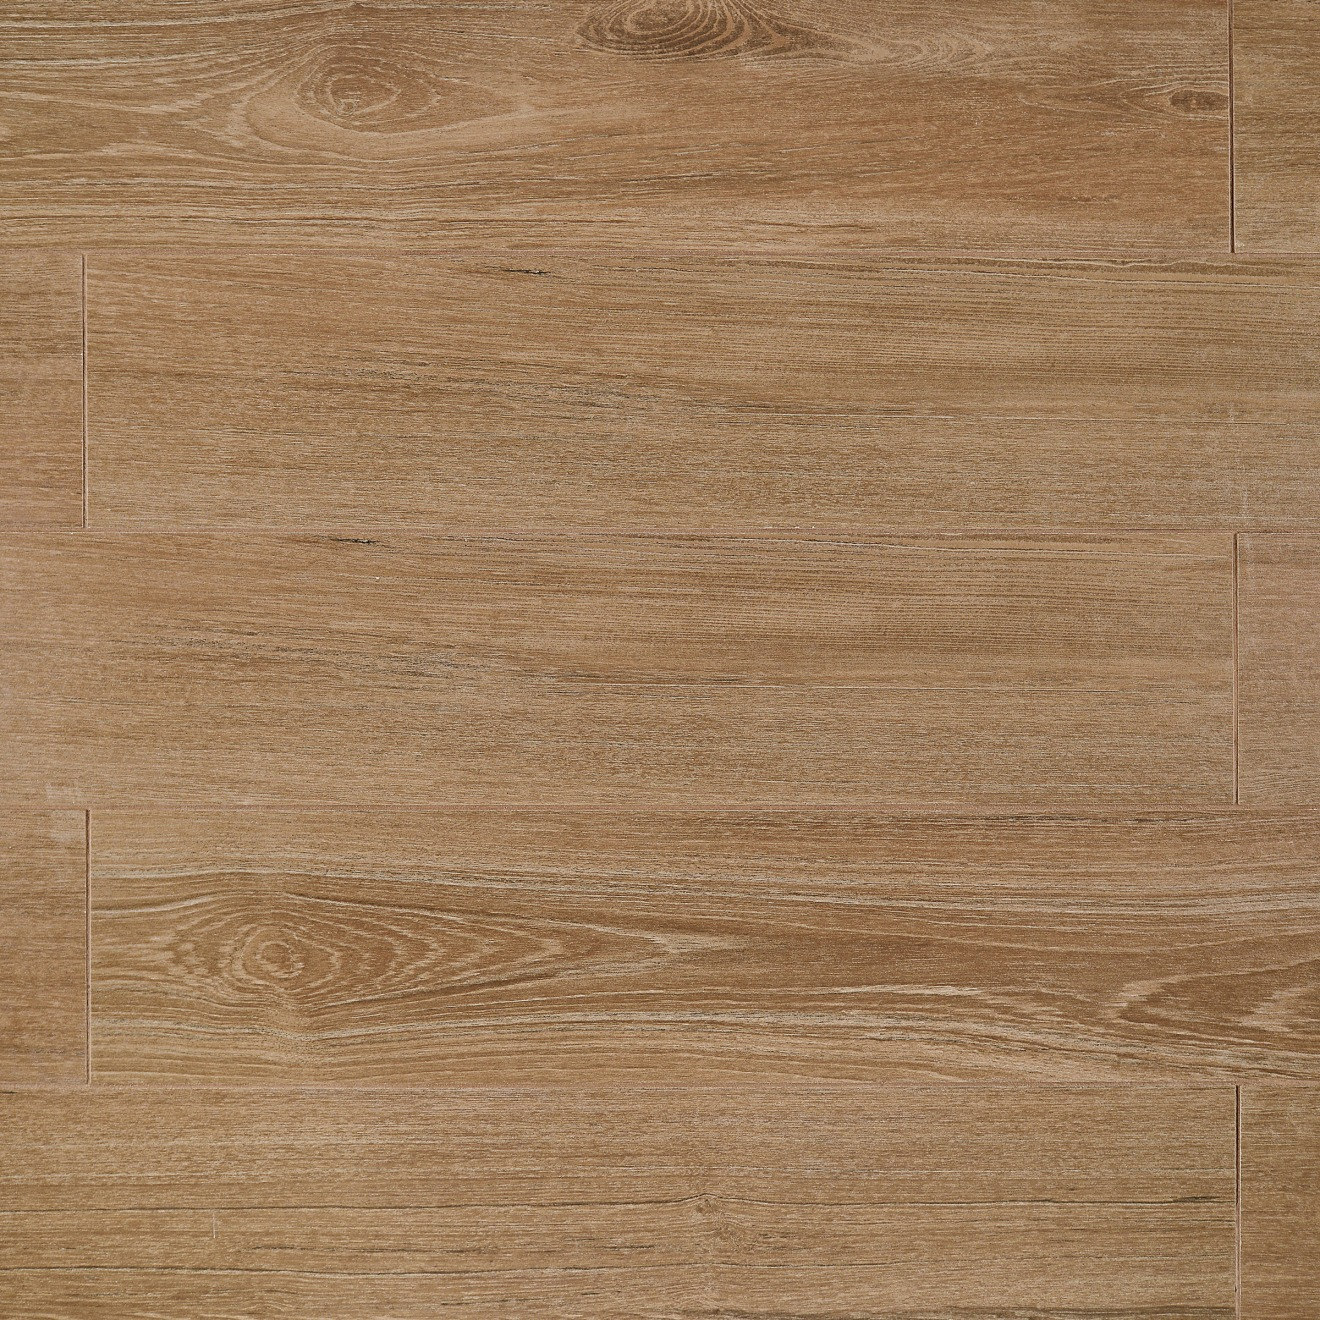 Chesapeake 8 X 36 X 38 Floor And Wall Tile In Walnut